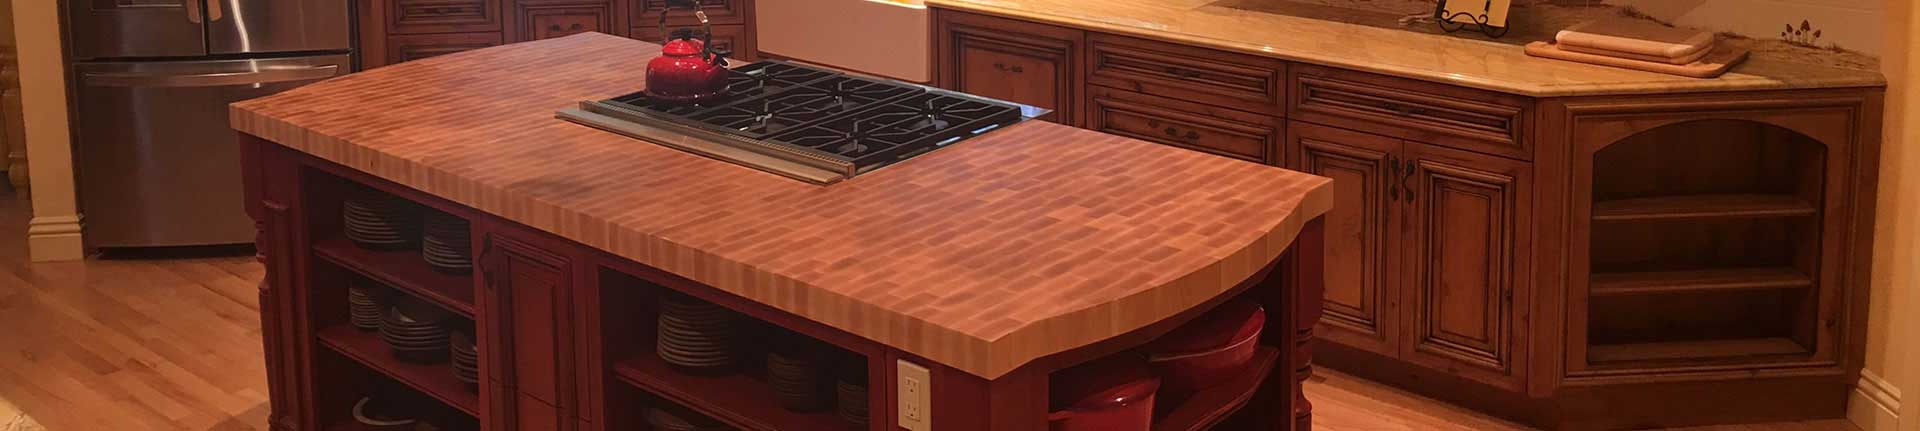 Custom Commercial Cabinetry   Feist Cabinets and Woodworks, Inc